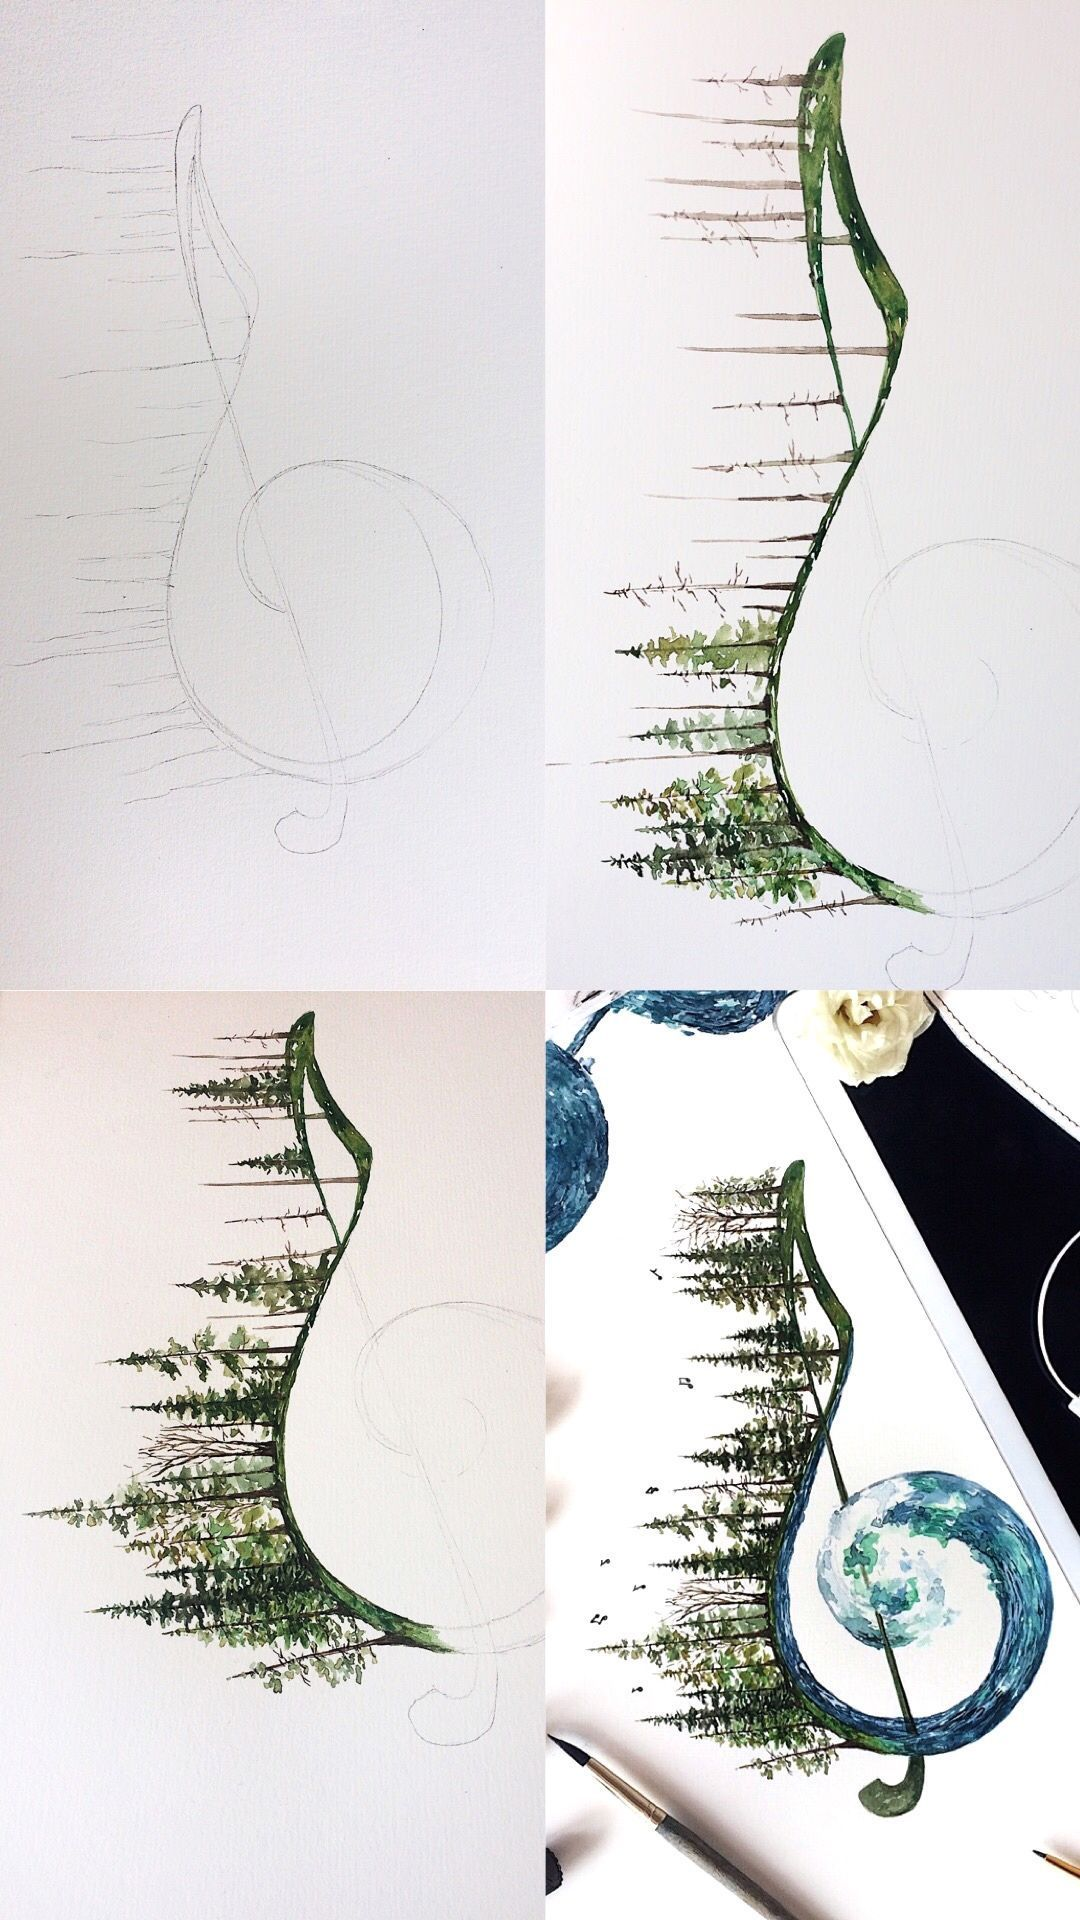 Rosa F (@rosies.sketchbook) • Instagram photos and videos #photosofnature Treble clef watercolor painting step by step process photos, mini tutorial. Sound of nature, is music to my ears, rustling of the leaves and the crashing of waves on the shore. #art #trebleclef #sound #artist #artwork #ocean #trees #nature #natureart